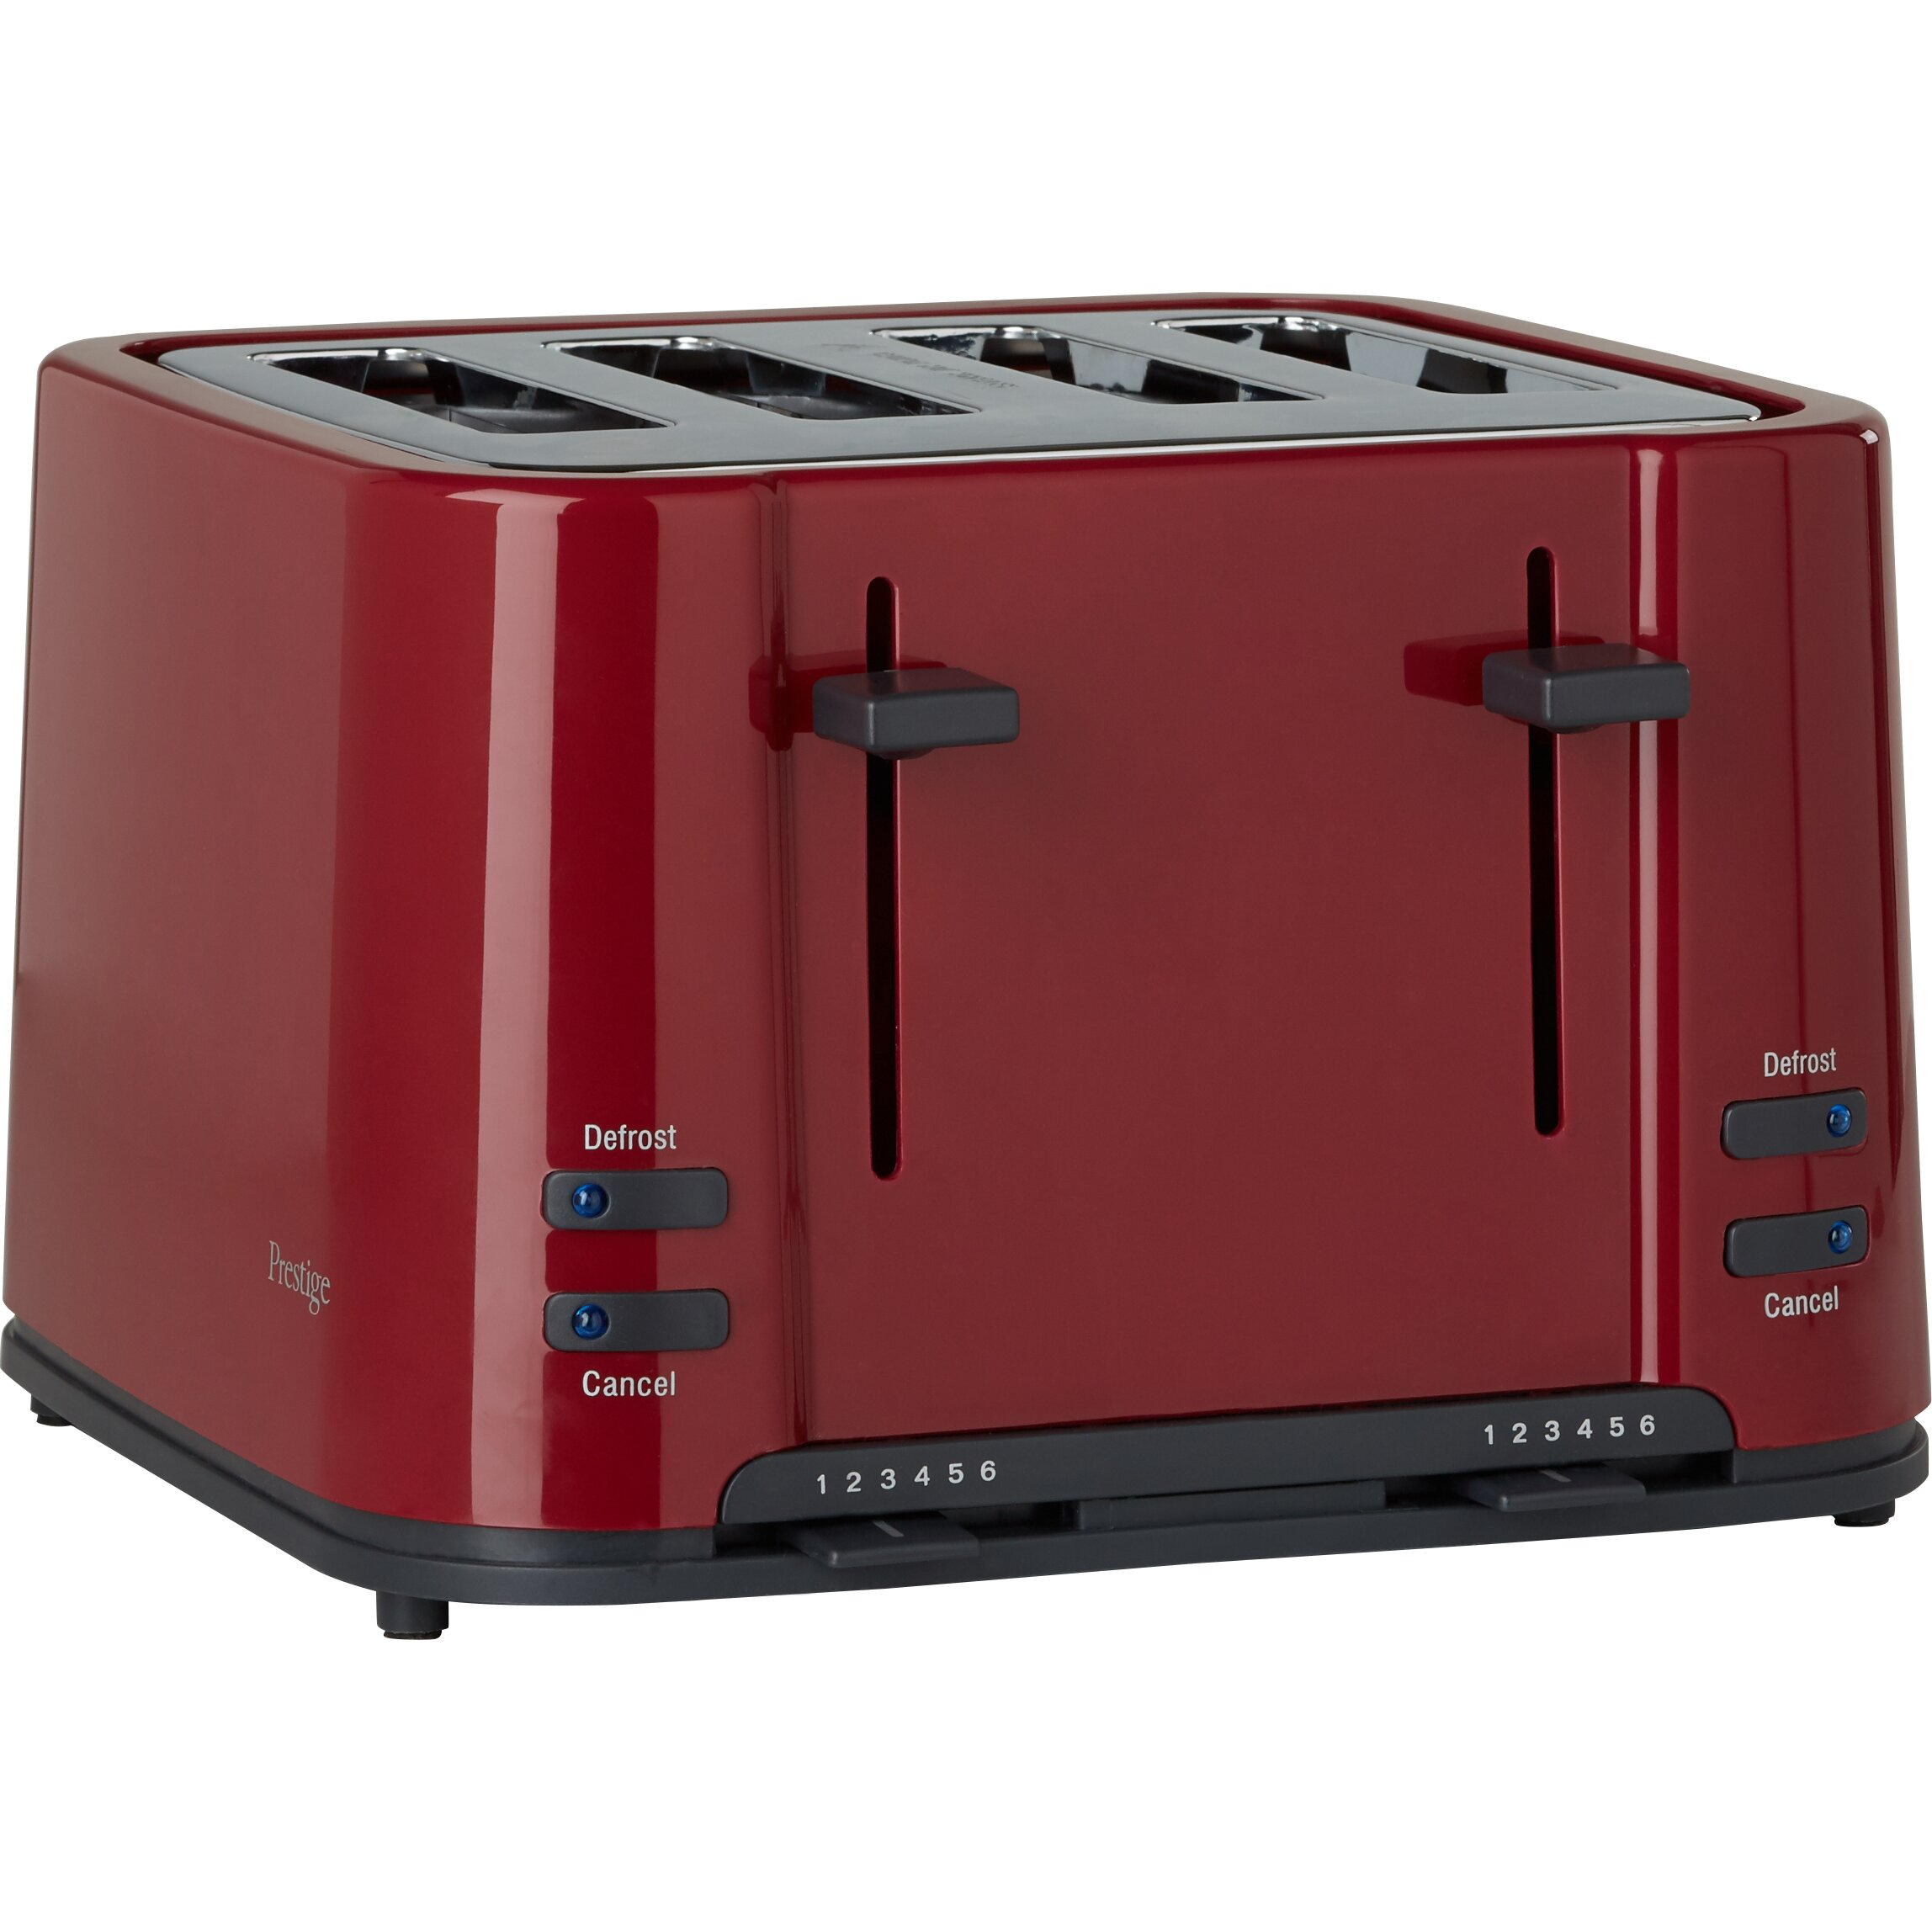 prestige eco 4 slice toaster reviews wayfair uk. Black Bedroom Furniture Sets. Home Design Ideas